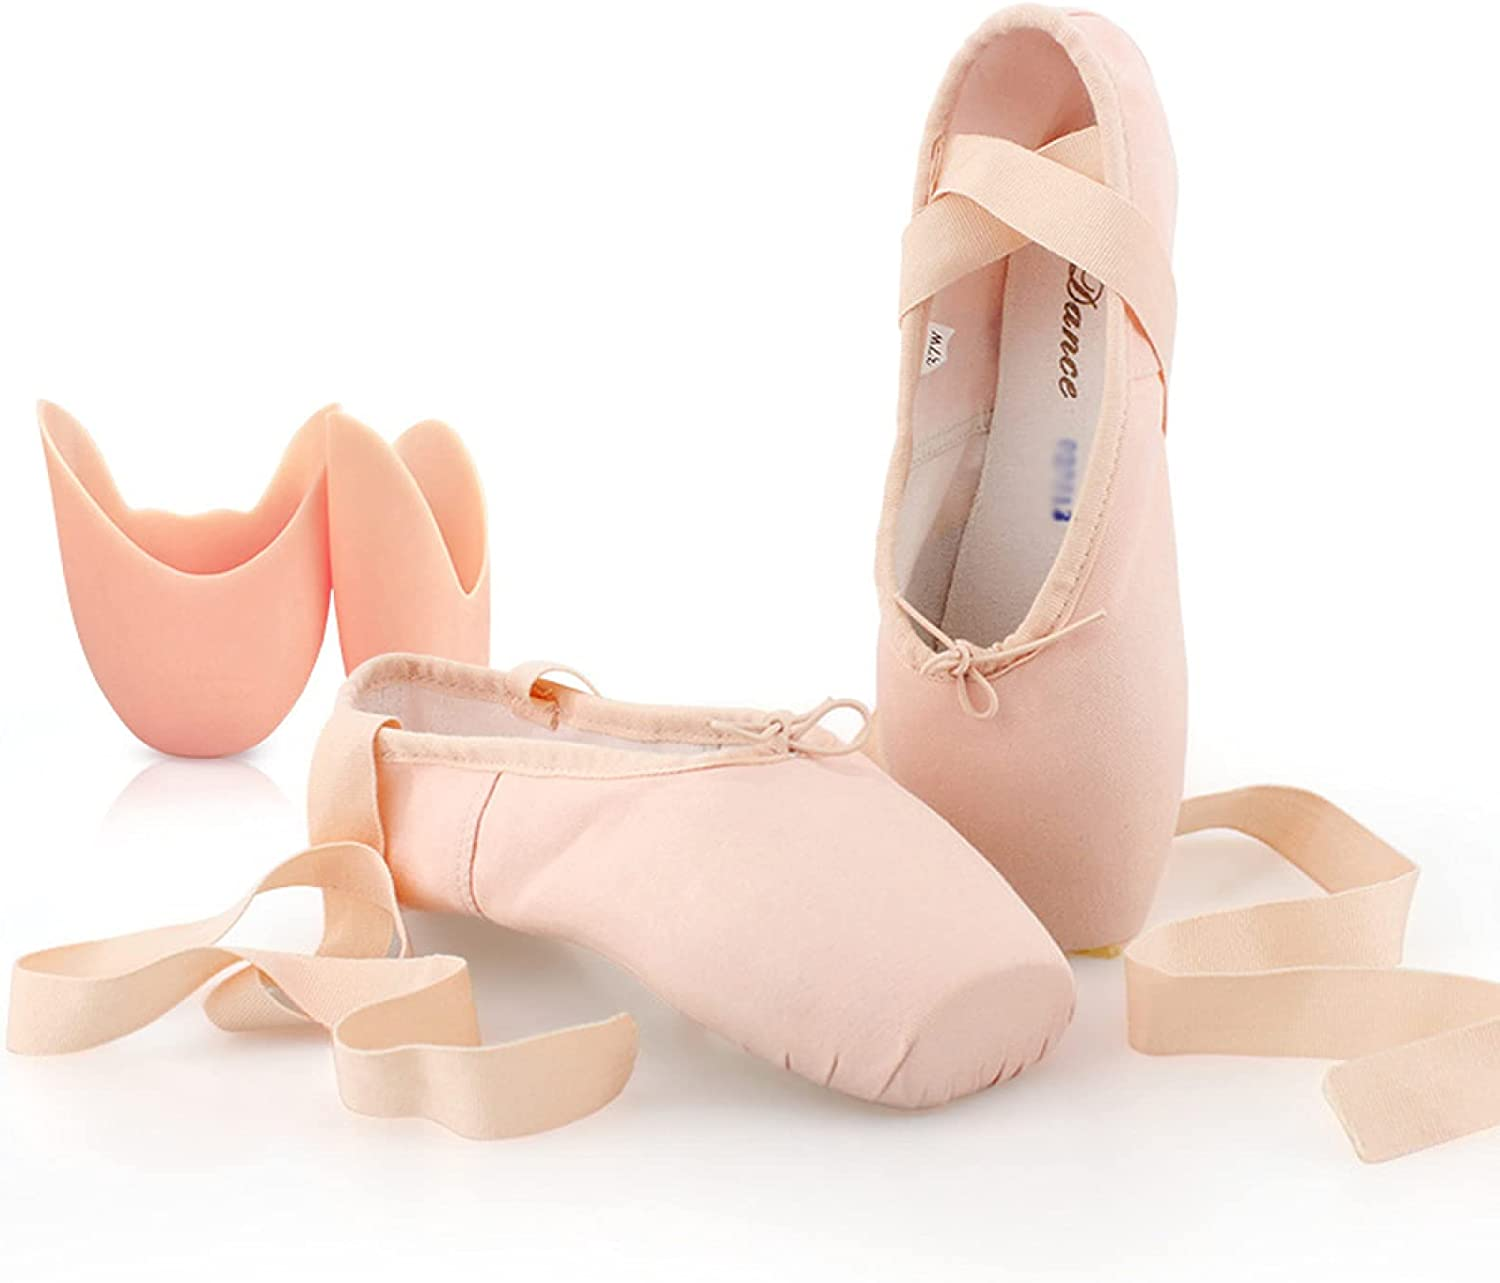 AGYE Ballet Shoes,Professional Ballet Pointe Shoes Dance Shoes Ballet Flats Full Sole Dance Slippers for Girls Women,PinkB+ToeCaps-41